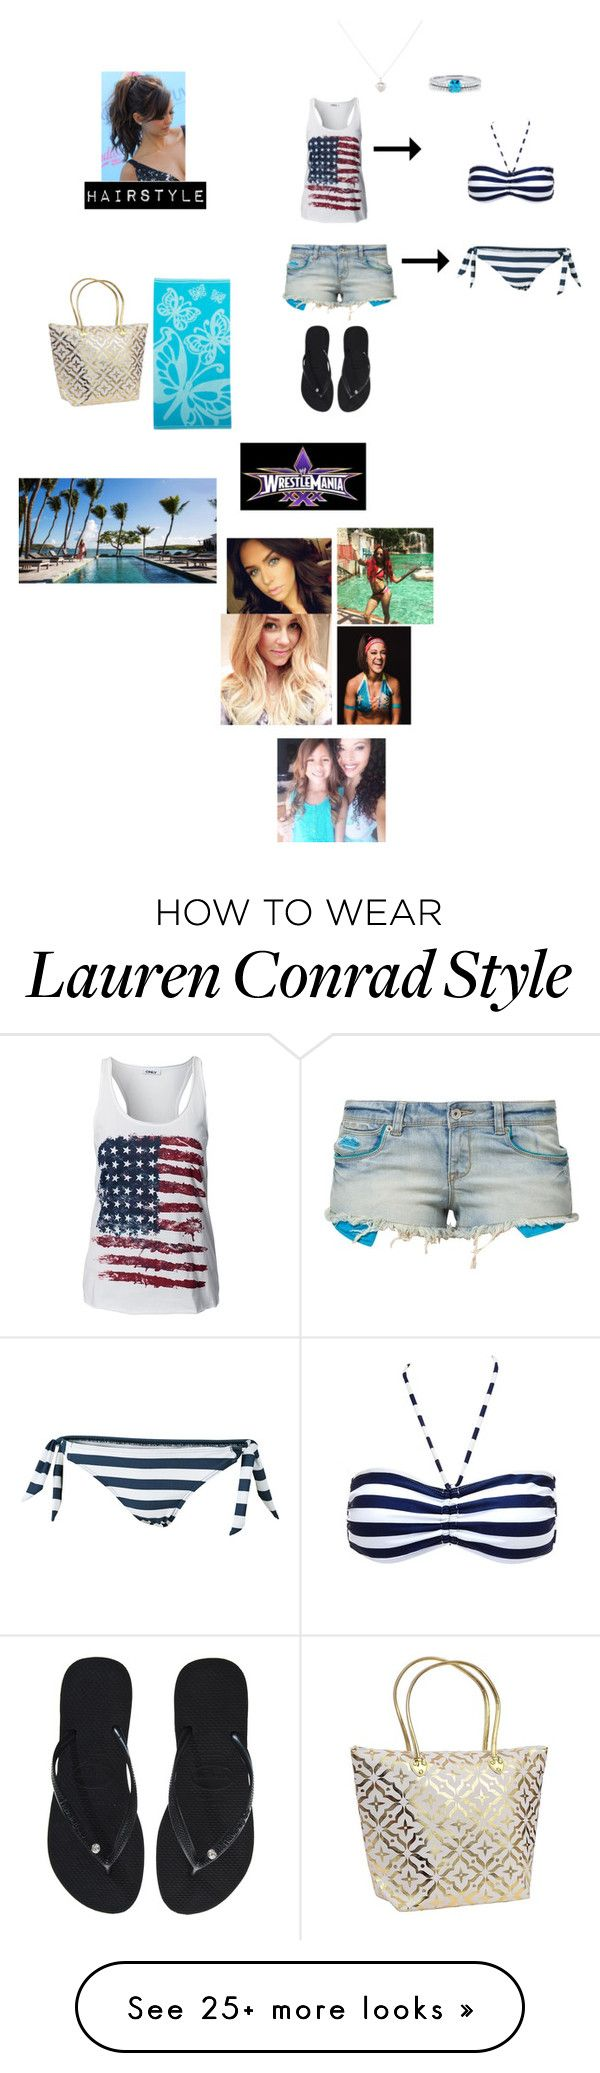 """""""At The pool Mania Week with Kelly, Jojo, Galina, Sasha & Bayley (Cailan's Outfit)"""" by wwetnagirl on Polyvore featuring Superdry, Charlotte Russe, Fat Face, Accessorize, BERRICLE, ONLY, Havaianas, Superior, Lauren Conrad and CUL-DE-SAC"""